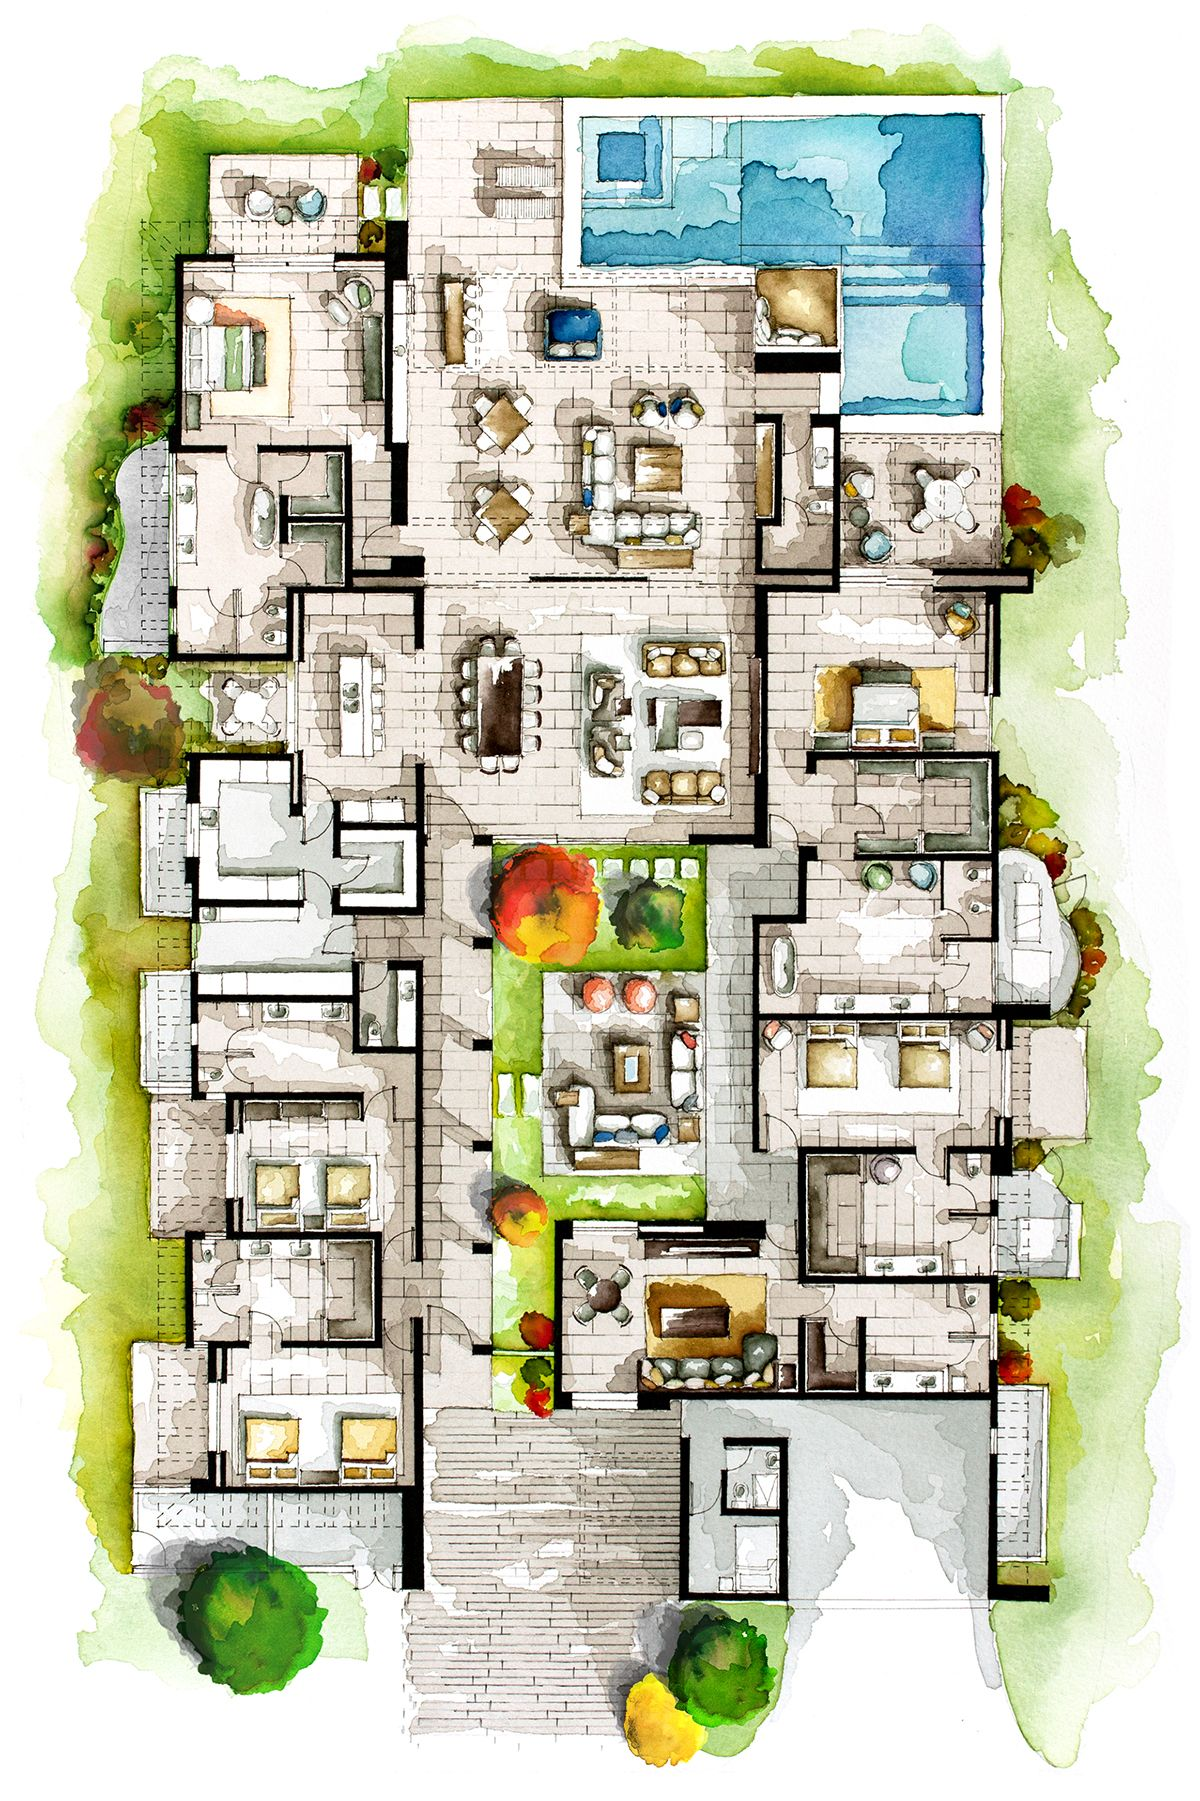 2d45d238671197 576a8dc7bcd84 Jpg 1200 1801 Architectural Floor Plans Hotel Floor Plan House Layout Plans